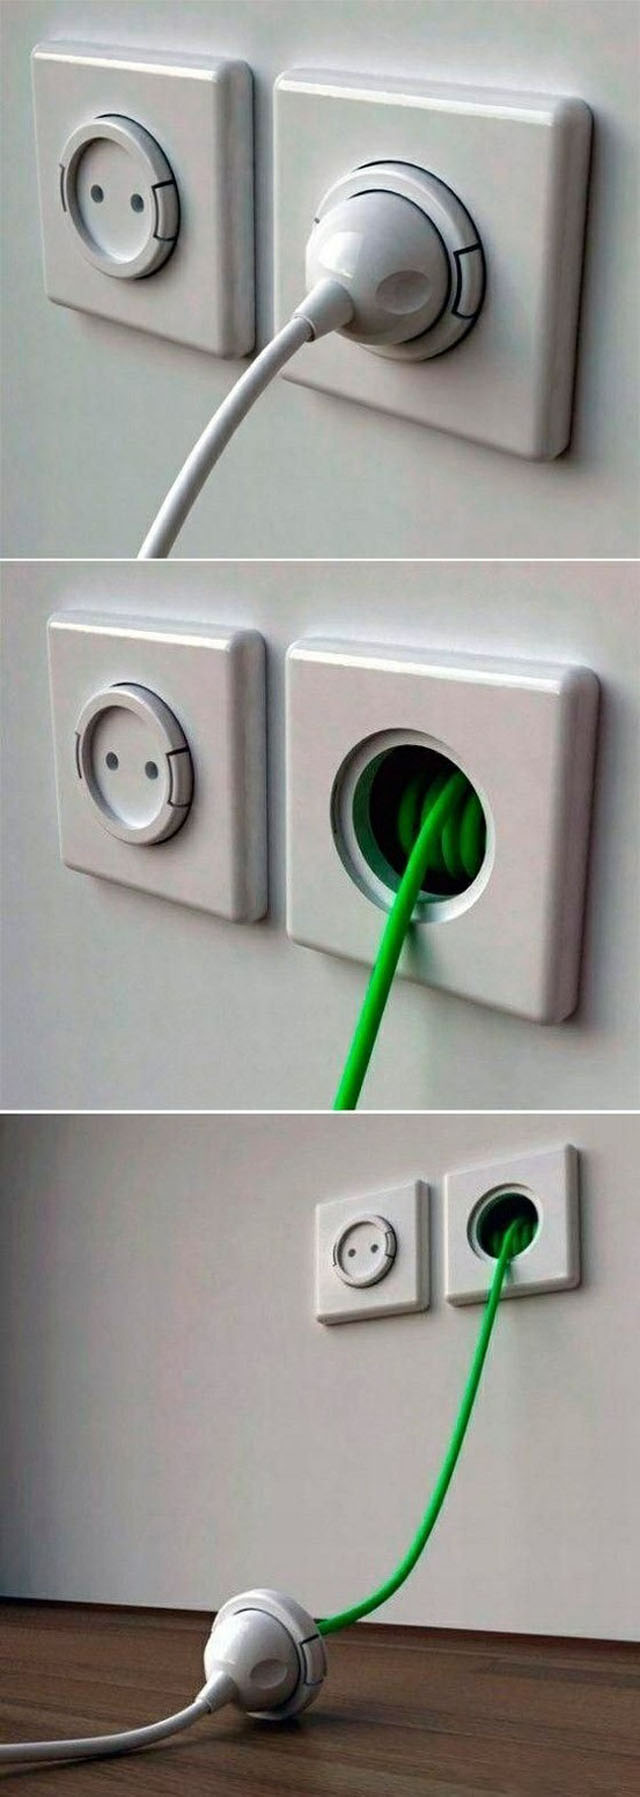 Almost Genius Ideas